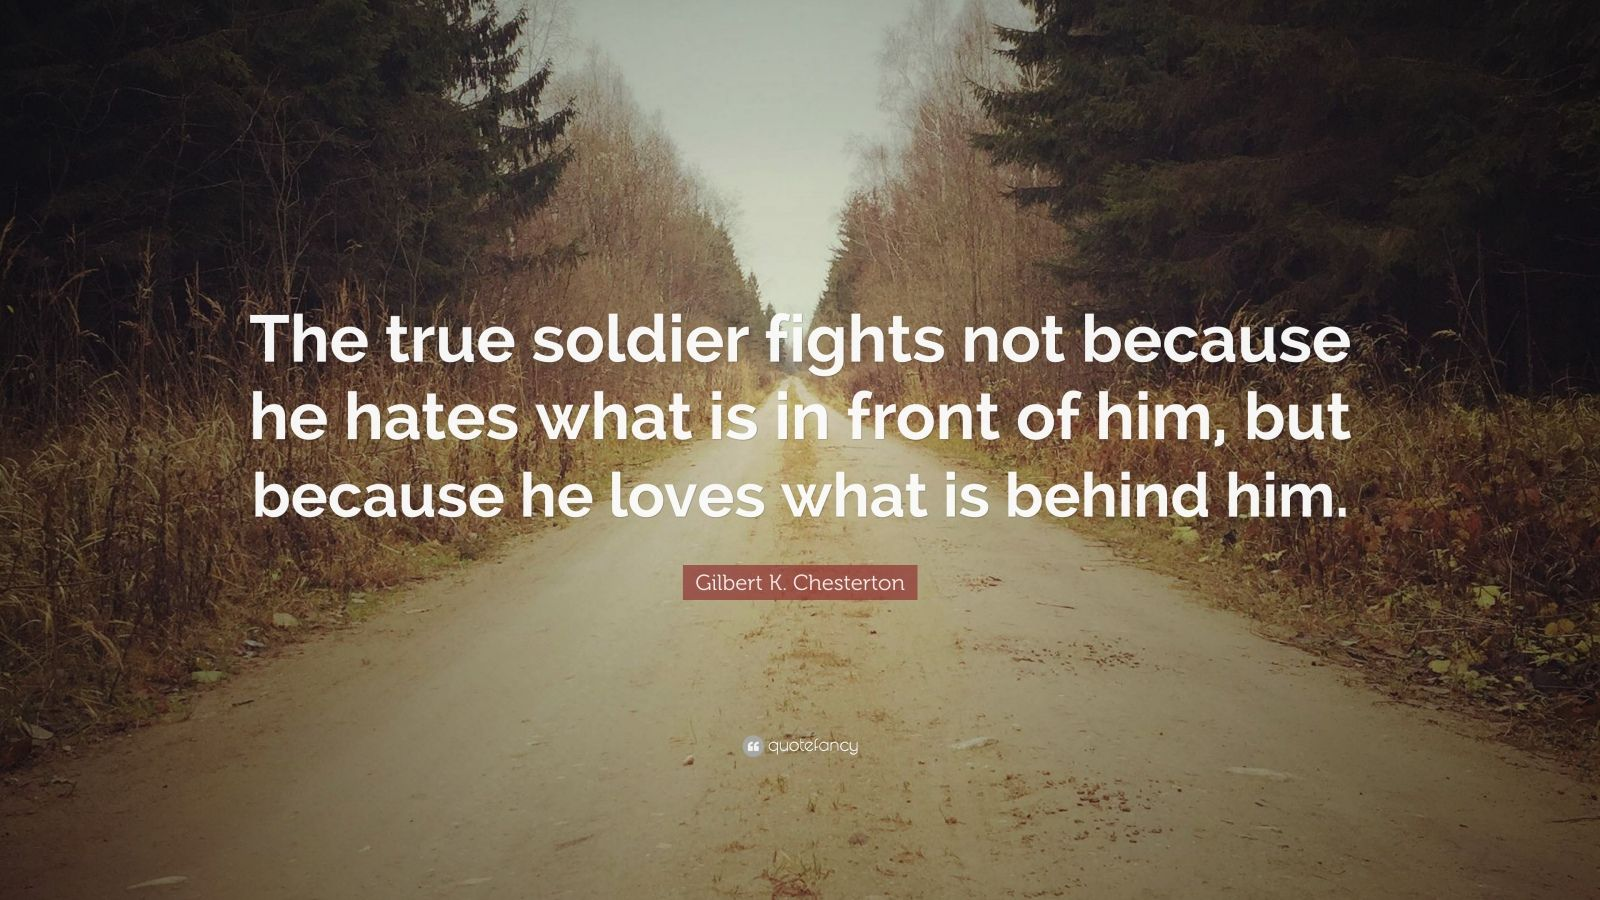 Heart Wallpaper With Quotes In Hindi Gilbert K Chesterton Quote The True Soldier Fights Not